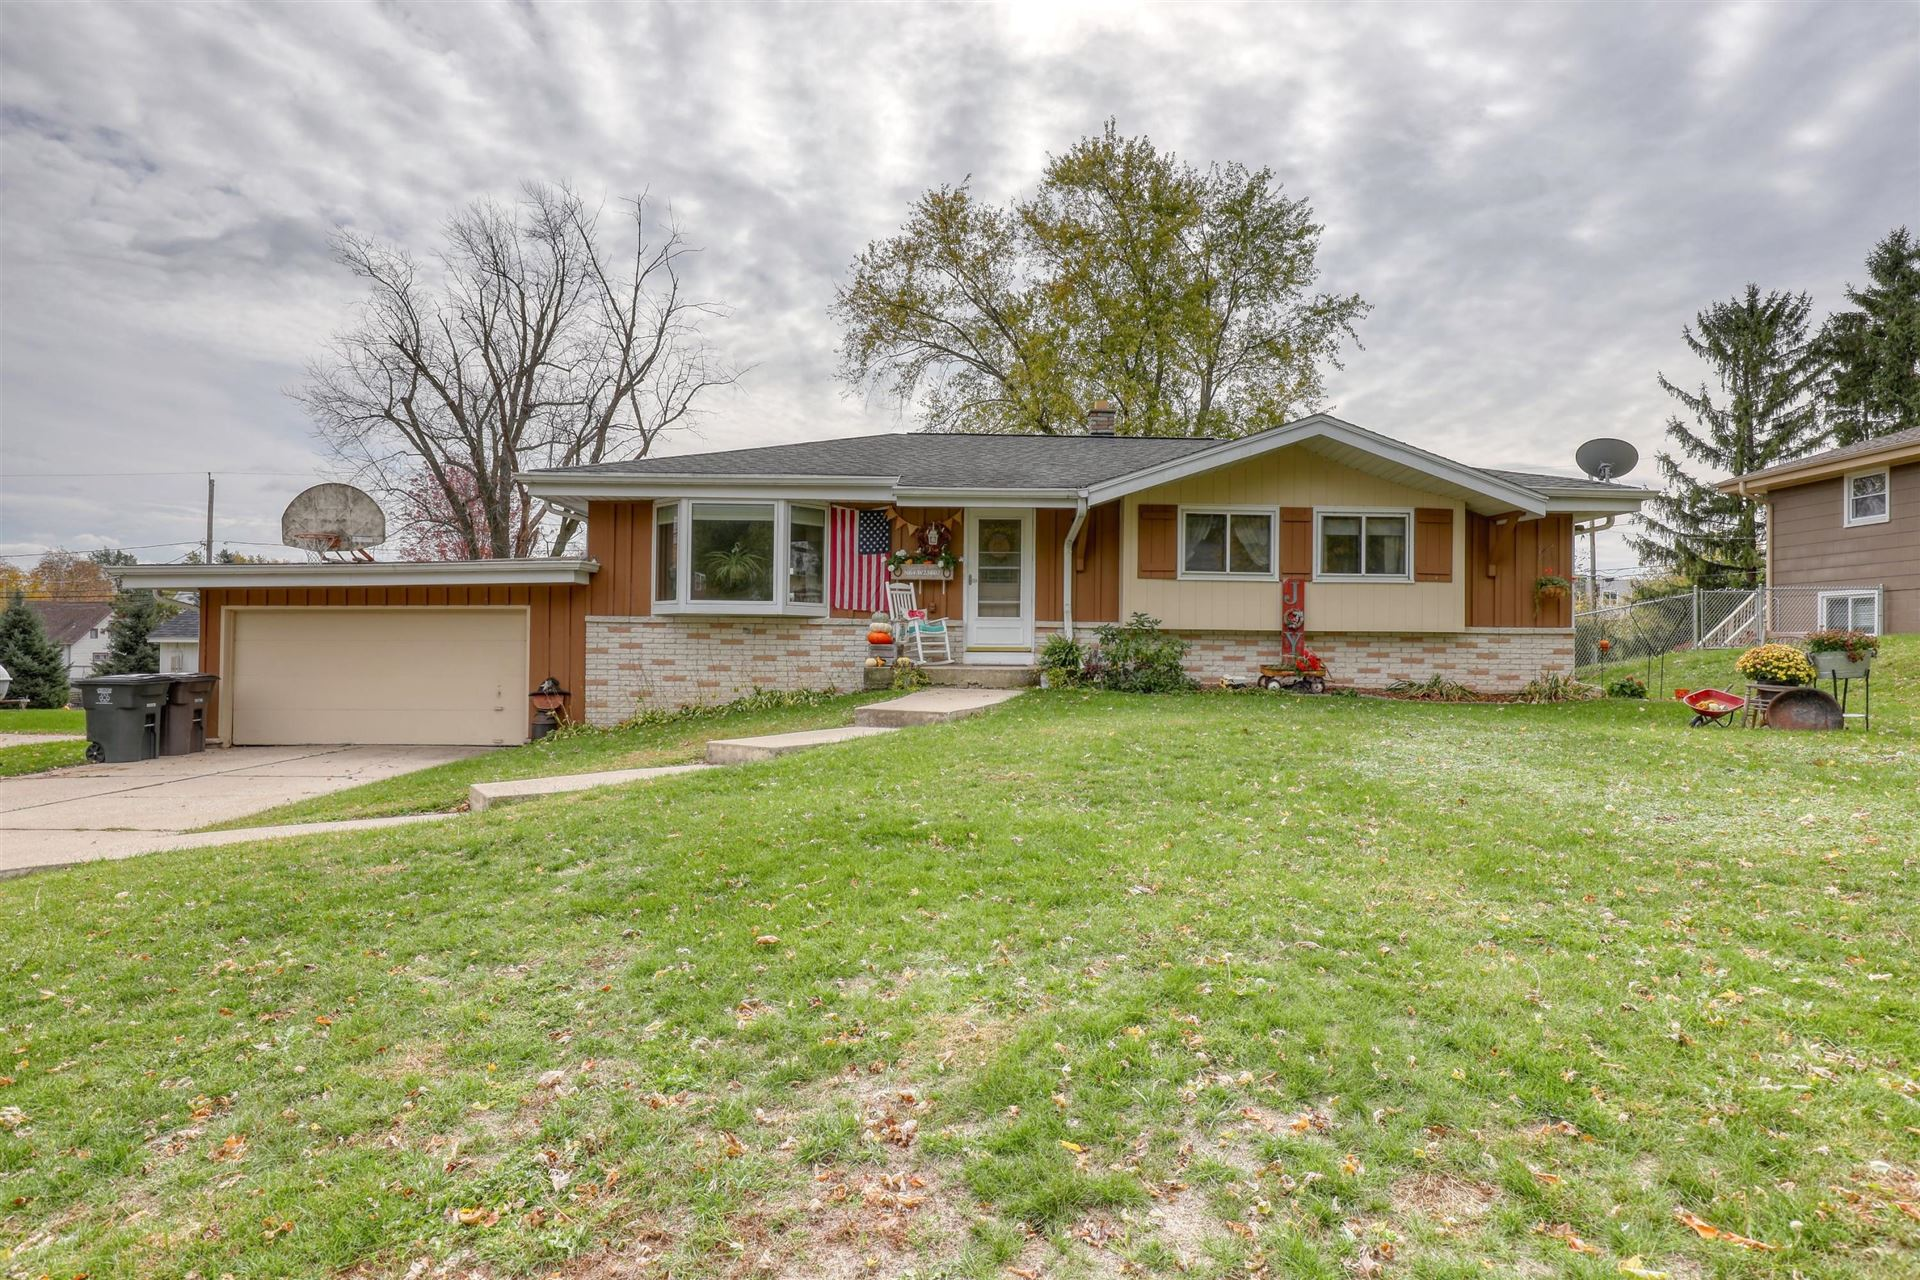 N64W23607 Ivy Ave, Sussex, WI 53089 - #: 1715532